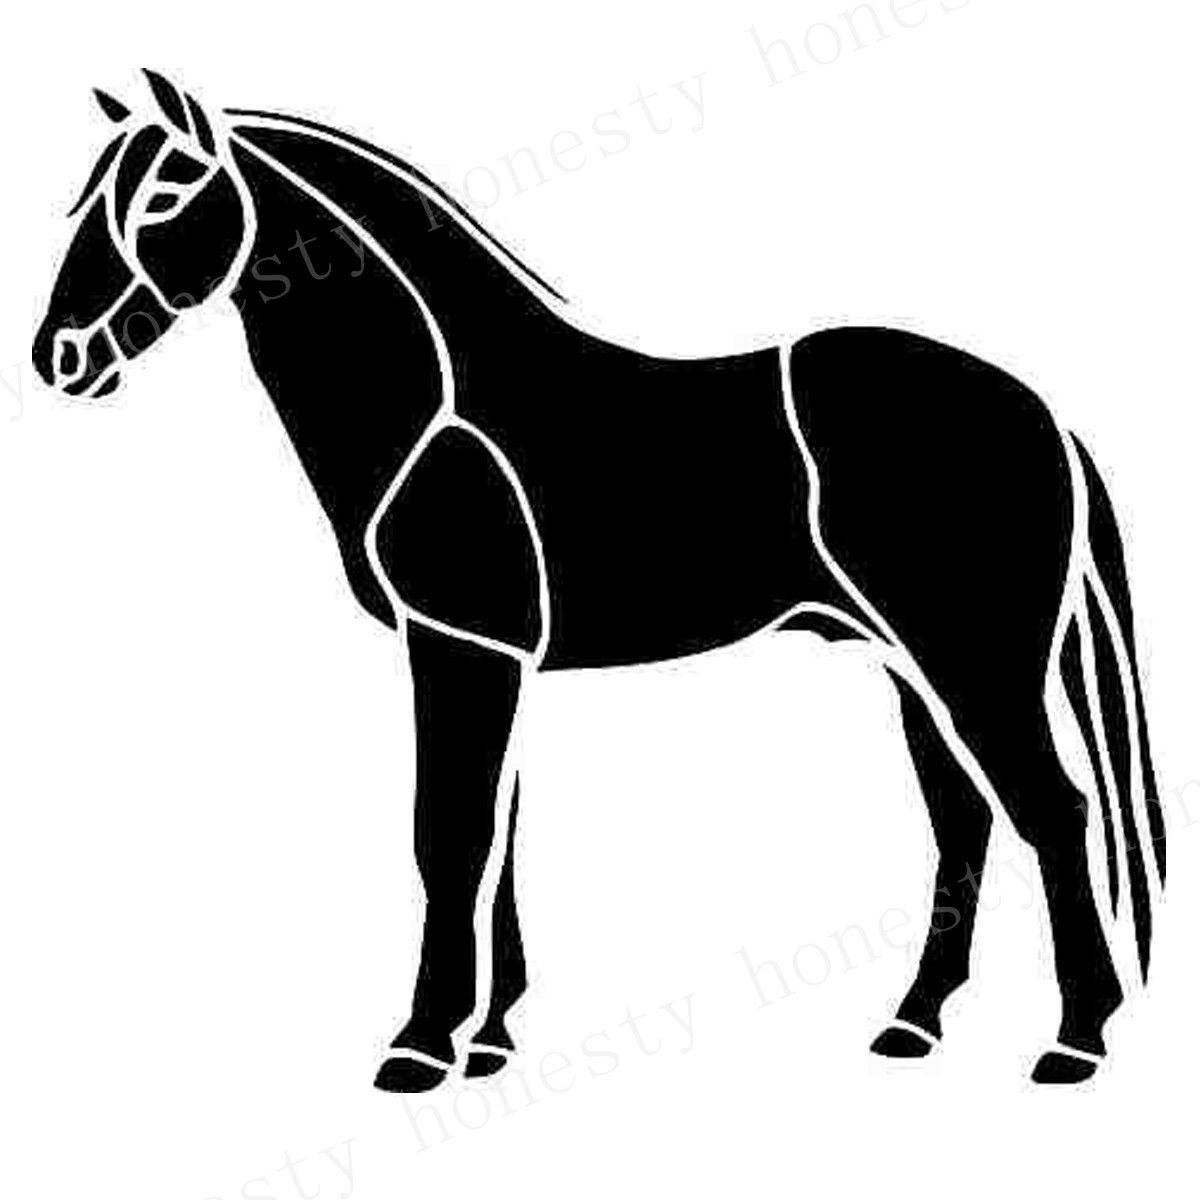 Horse Standing Car Wall Home Glass Window Door Car Sticker Laptop Truck Auto Home Black Animal Vinyl Decal Sticker Decor Gift